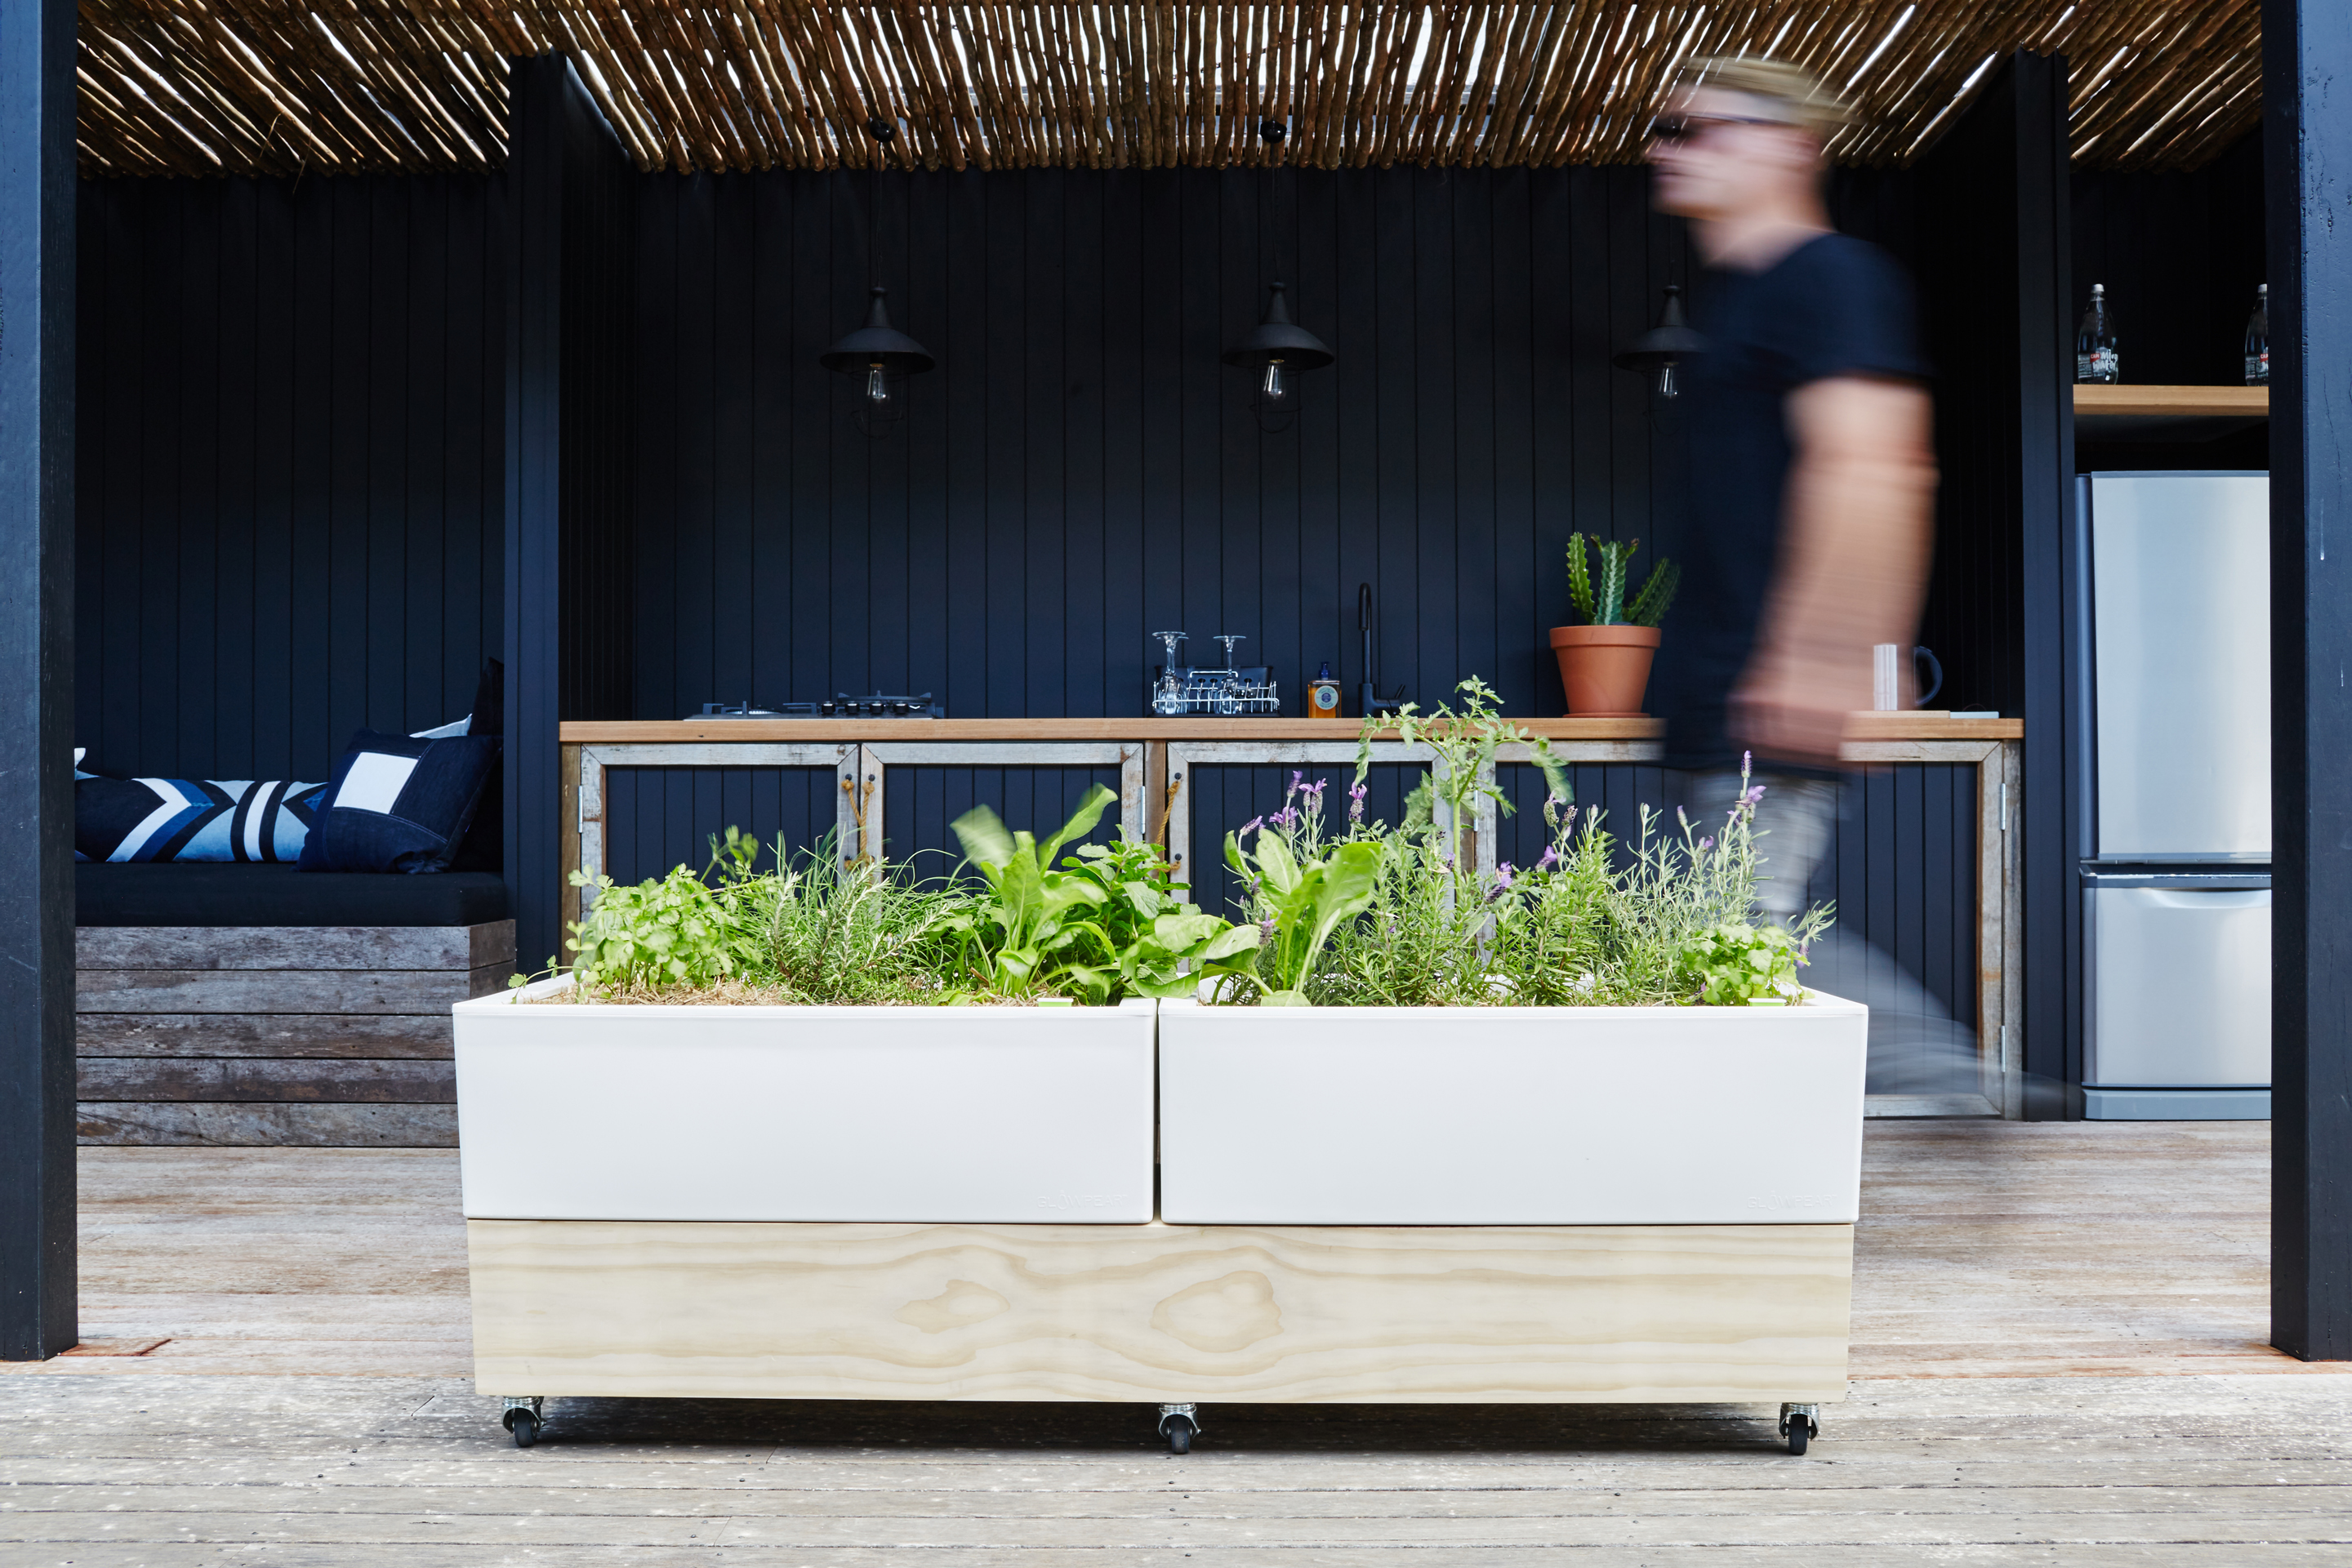 Glowpear Café Planter: more mobile goodness